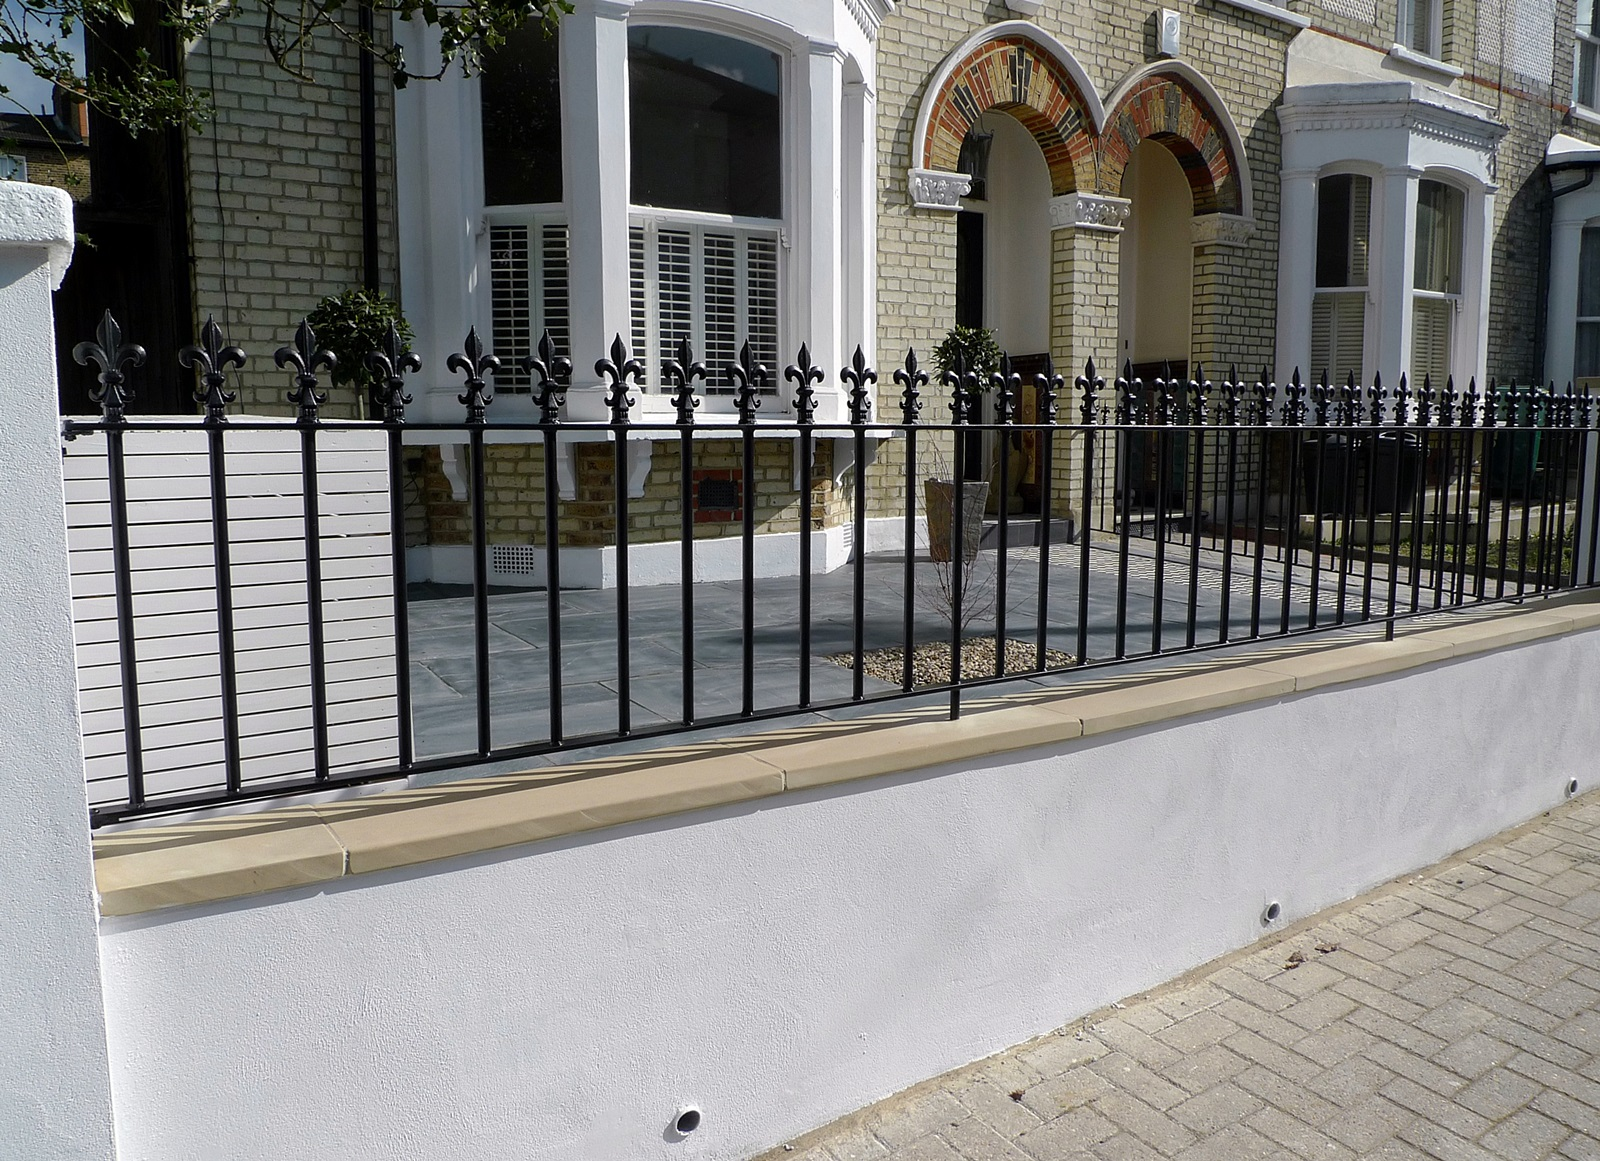 Front garden wall rail gate Victorian mosaic slate paving bespoke bin store York stone caps Balham Clapham Dulwich Tooting London (1)